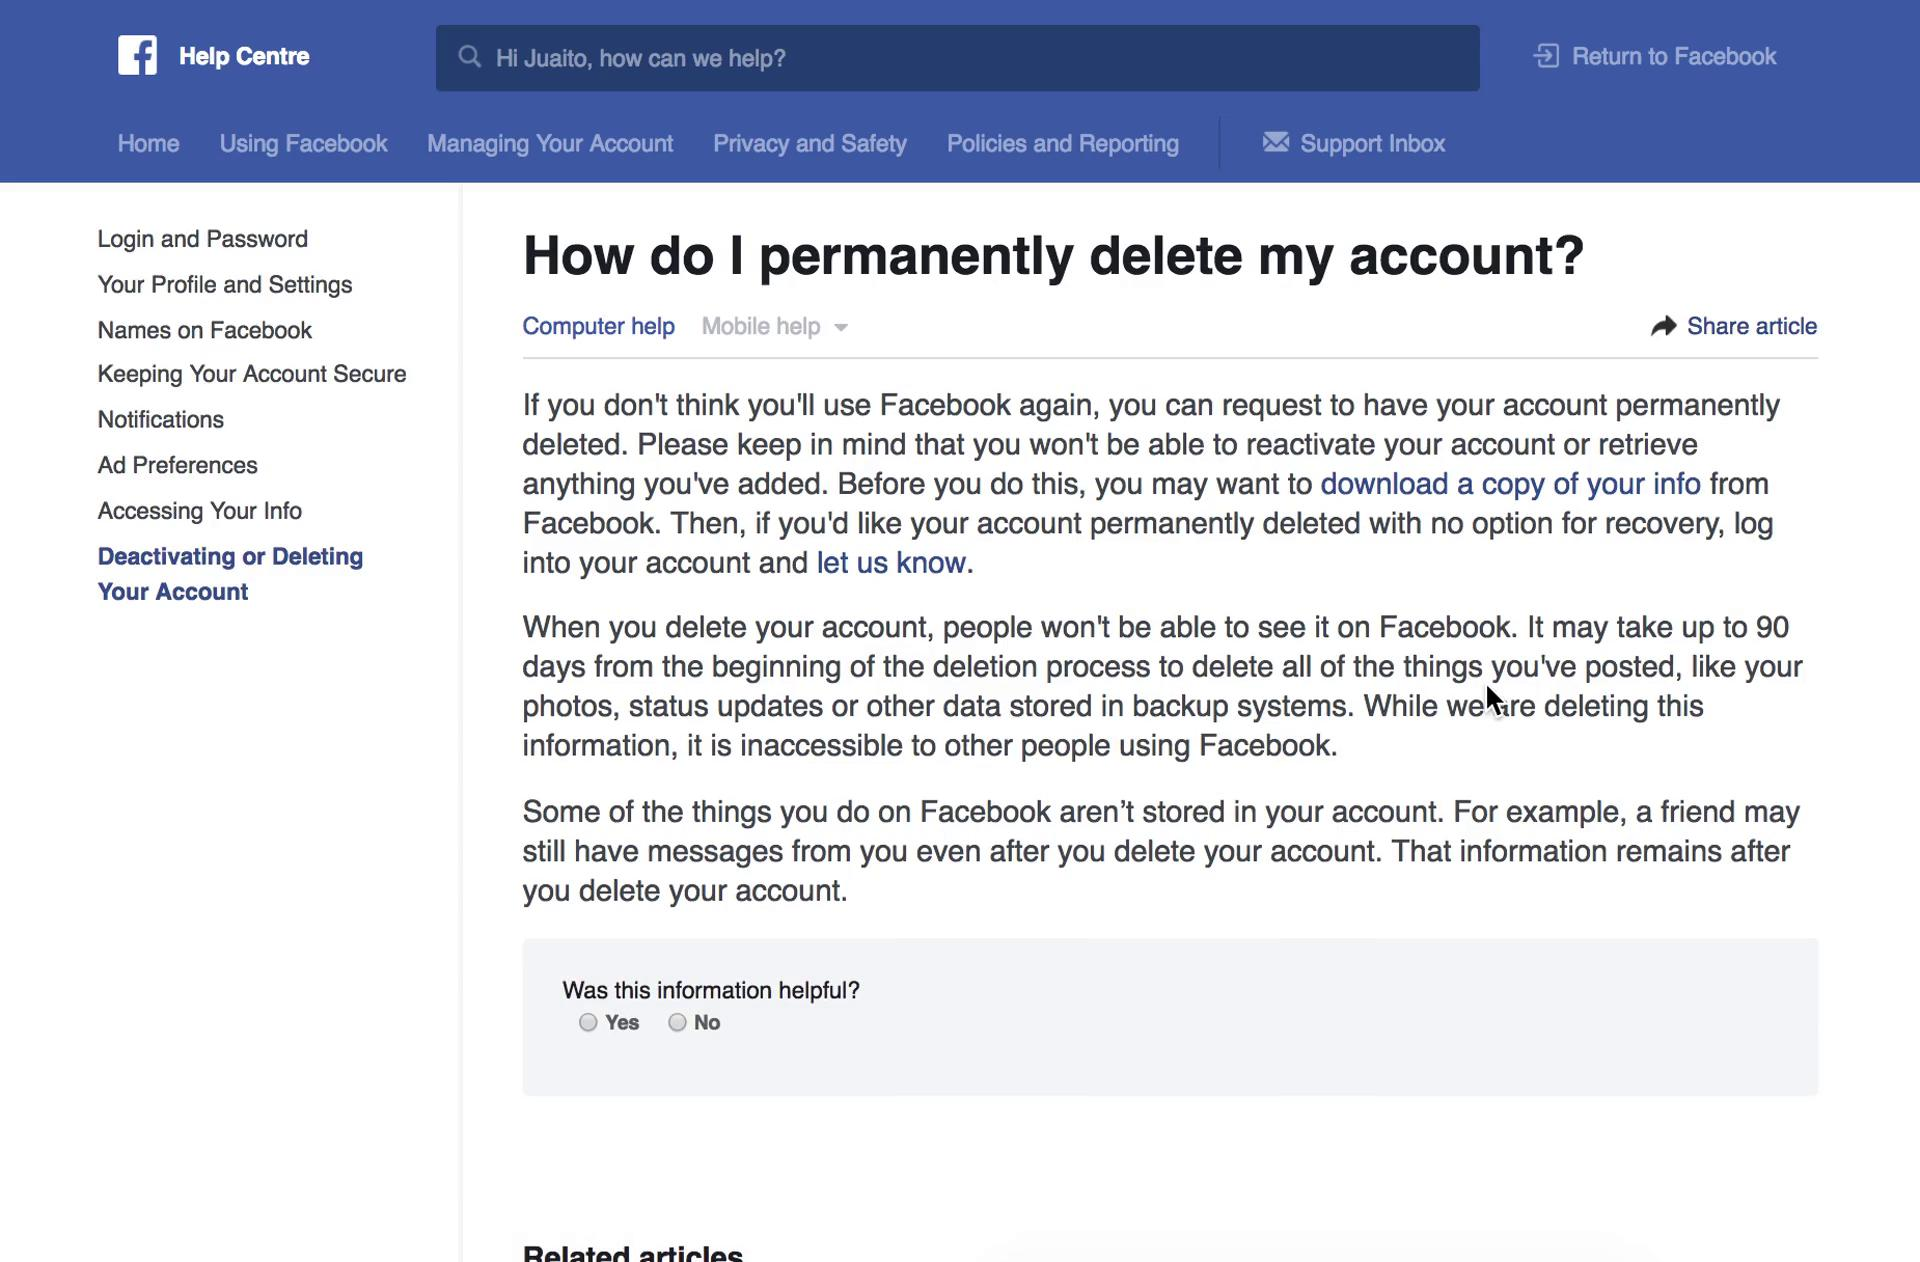 Facebook's account deletion help center page